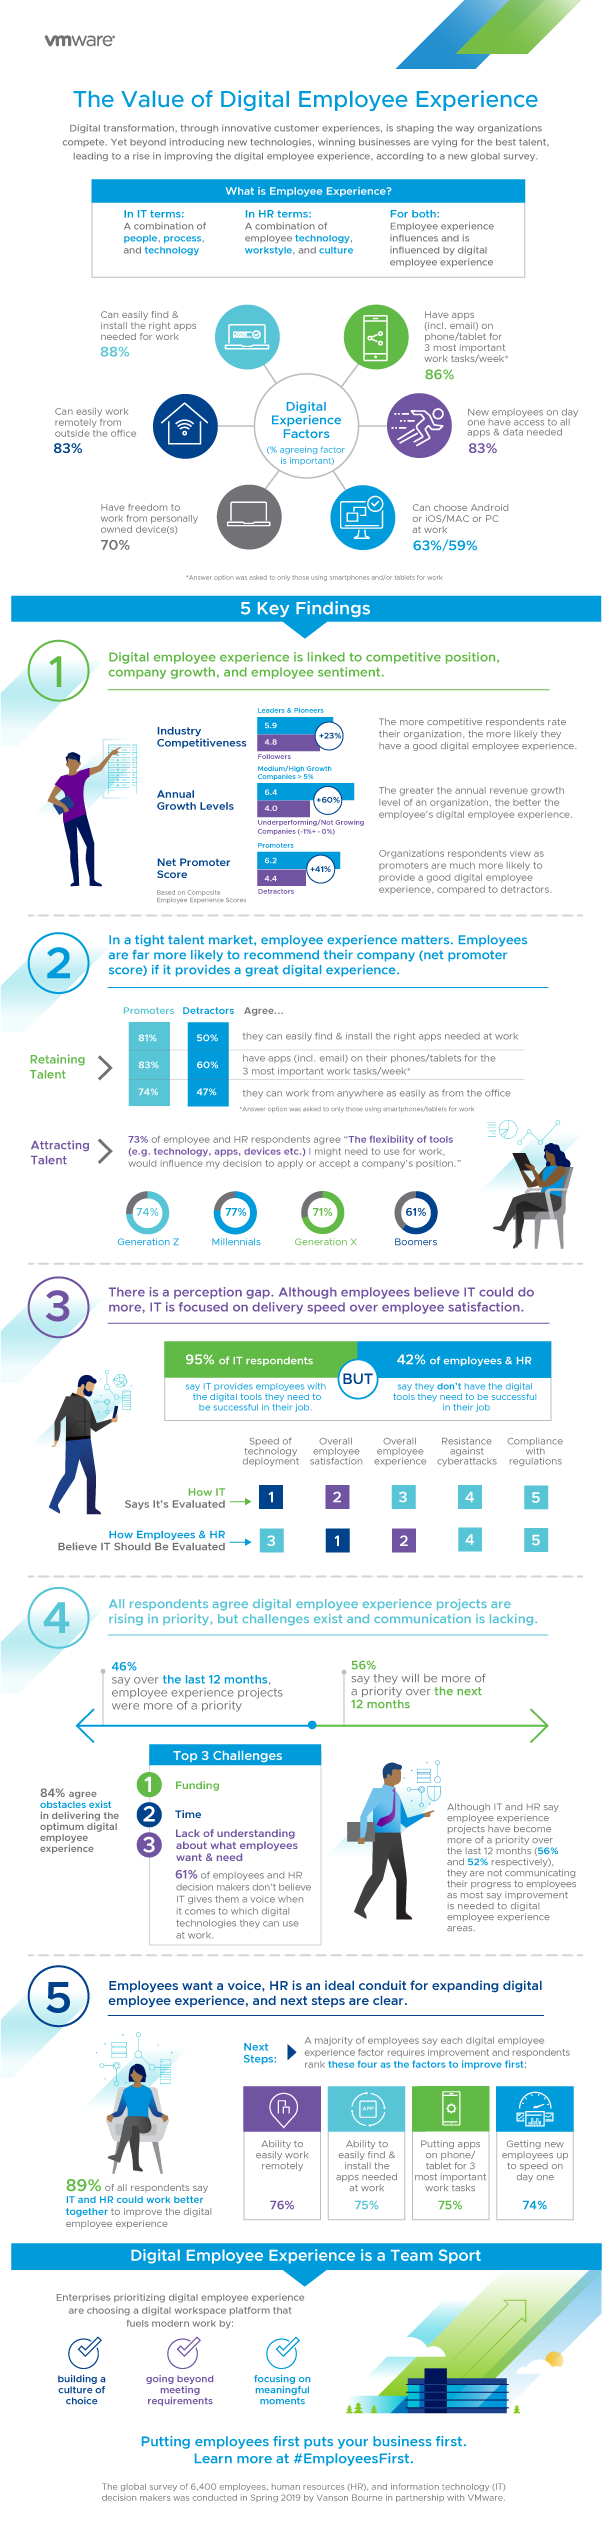 digital_employee_experience_infographic